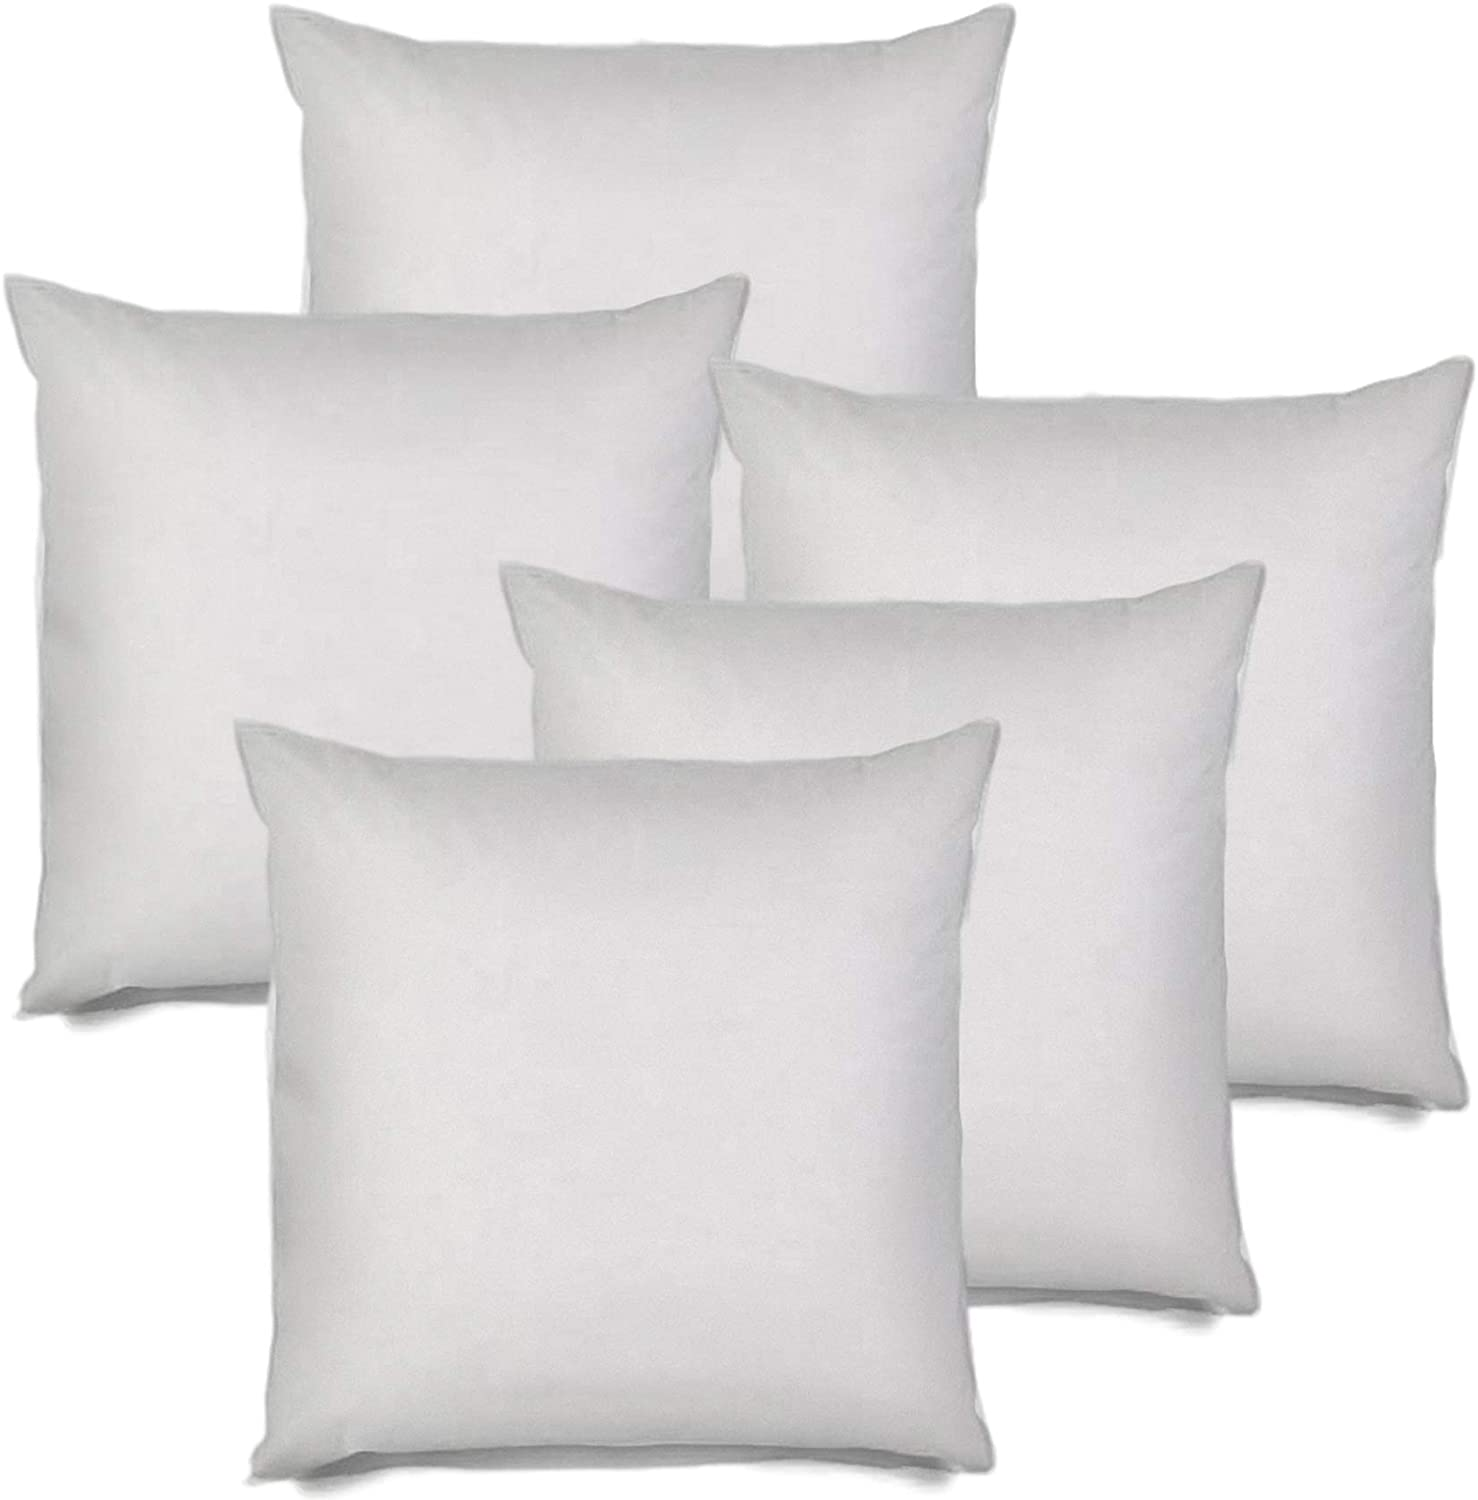 MSD 5 Pack Pillow Insert 34x34 Hypoallergenic Square Form Sham Stuffer Standard White Polyester Decorative Euro Throw Pillow Inserts for Sofa Bed - Made in USA (Set of 5) - Machine Washable and Dry